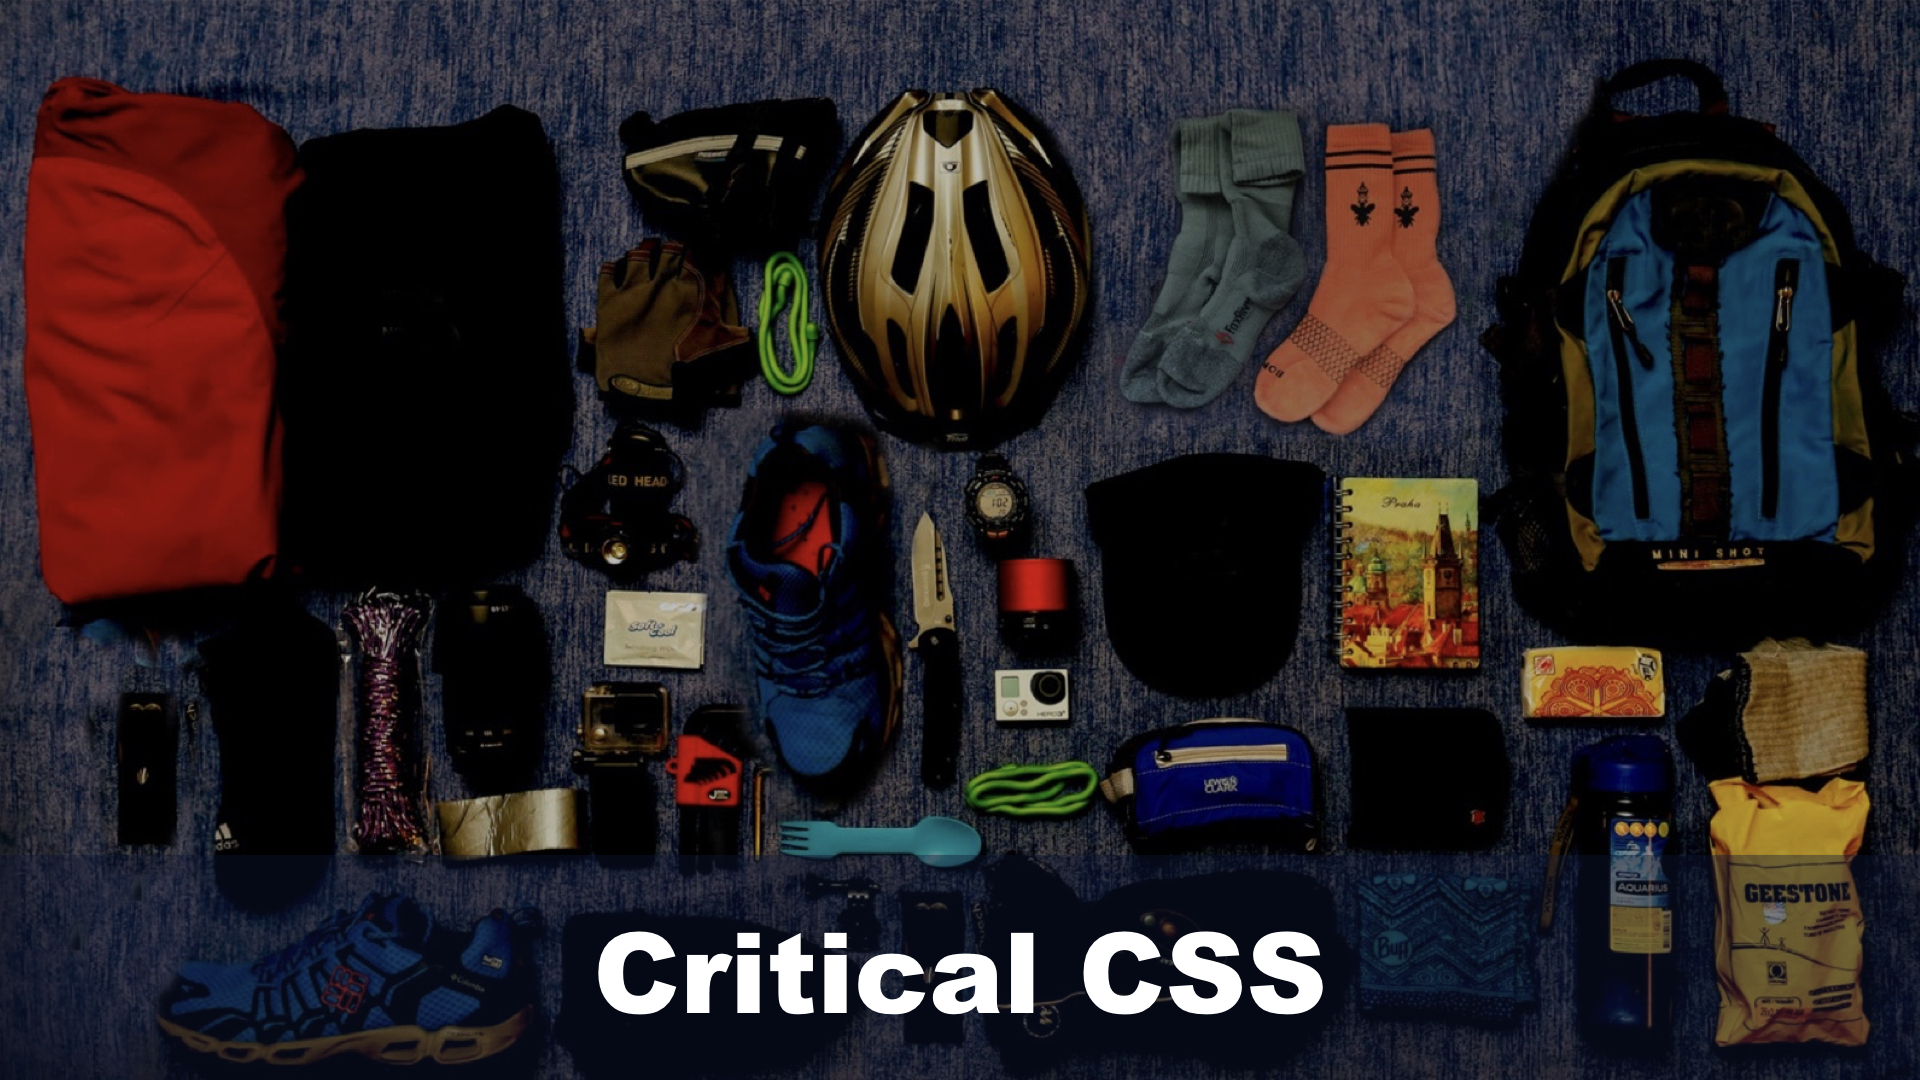 Critical CSS compared to packing for a hiking trip